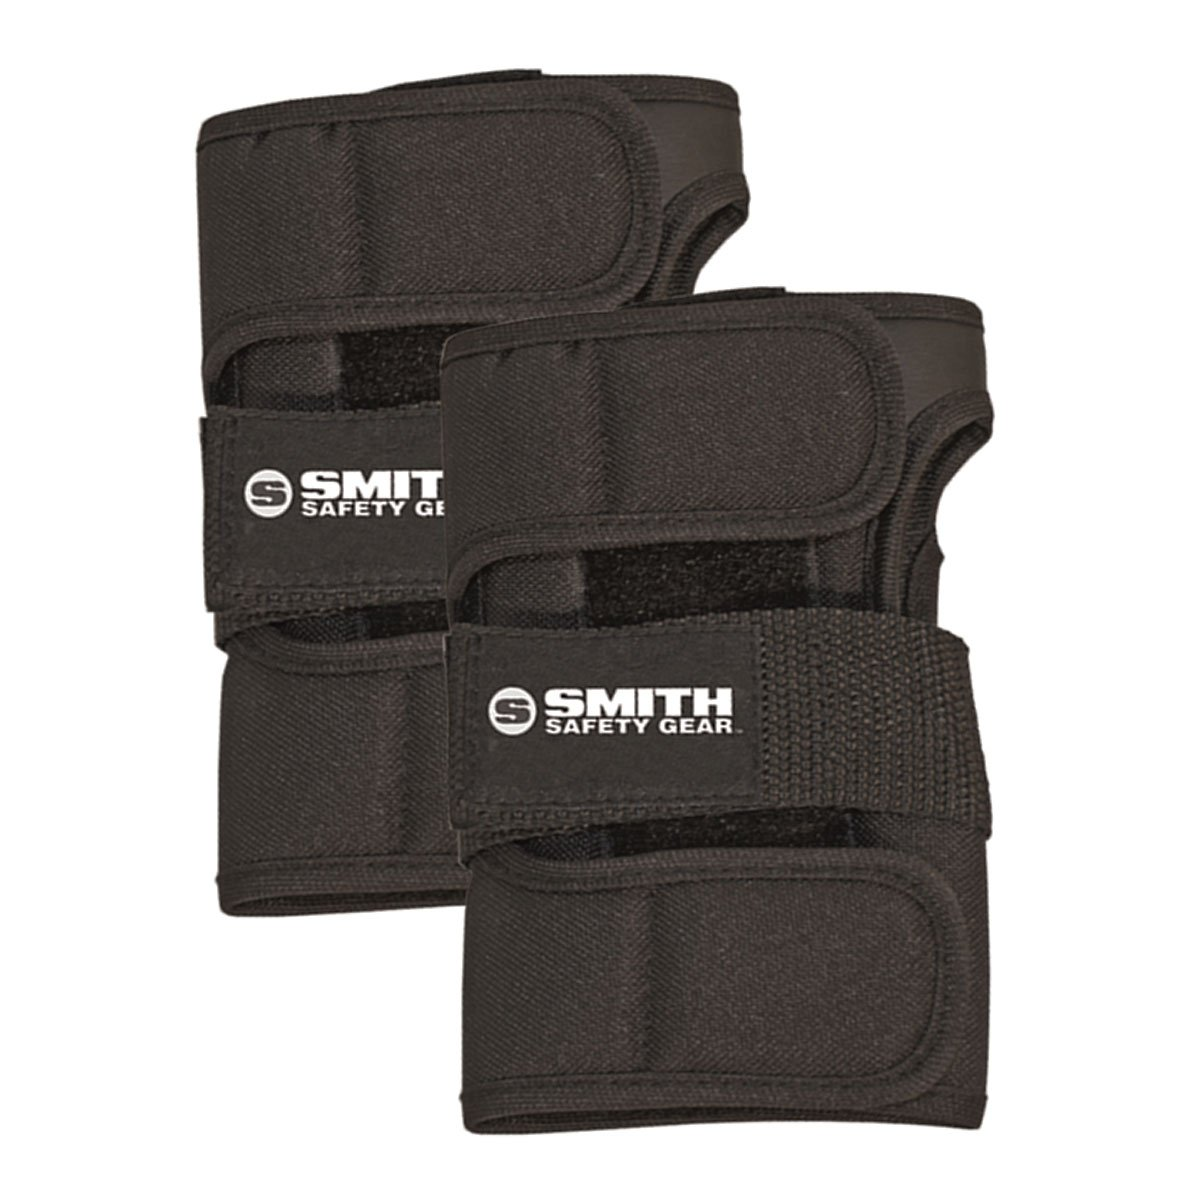 Smith Safety Gear Scabs Wrist Guards, Black, Small